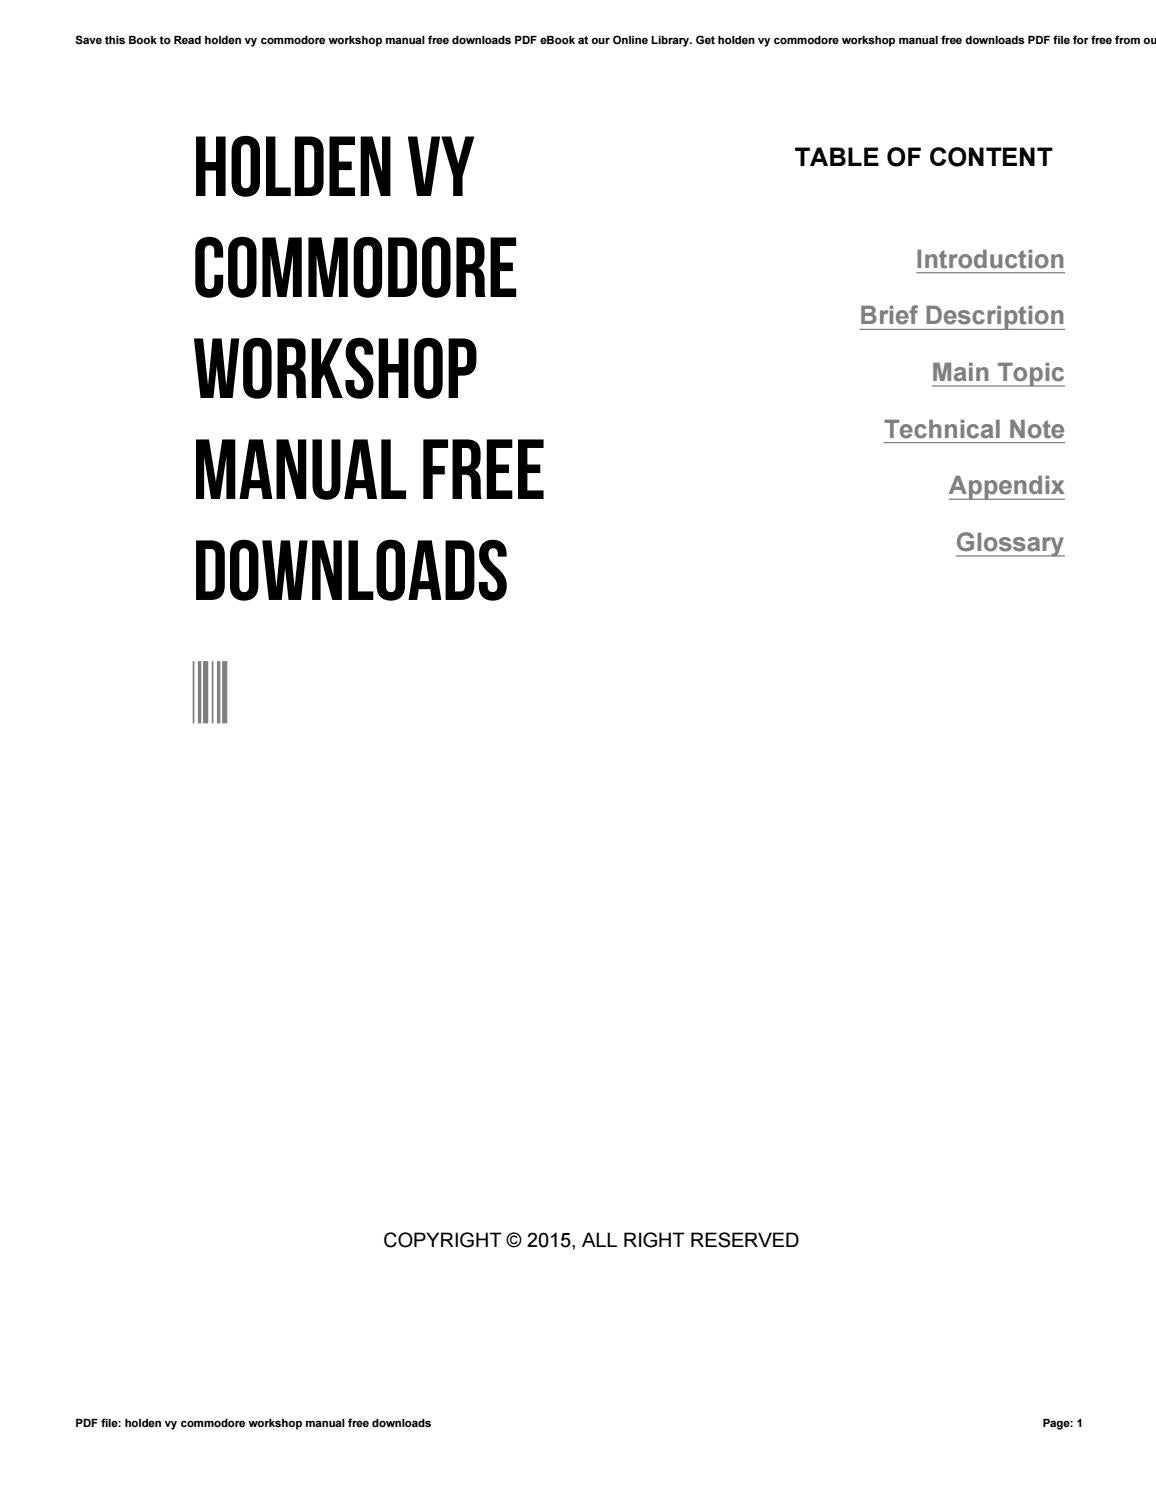 Holden vy commodore workshop manual free downloads by